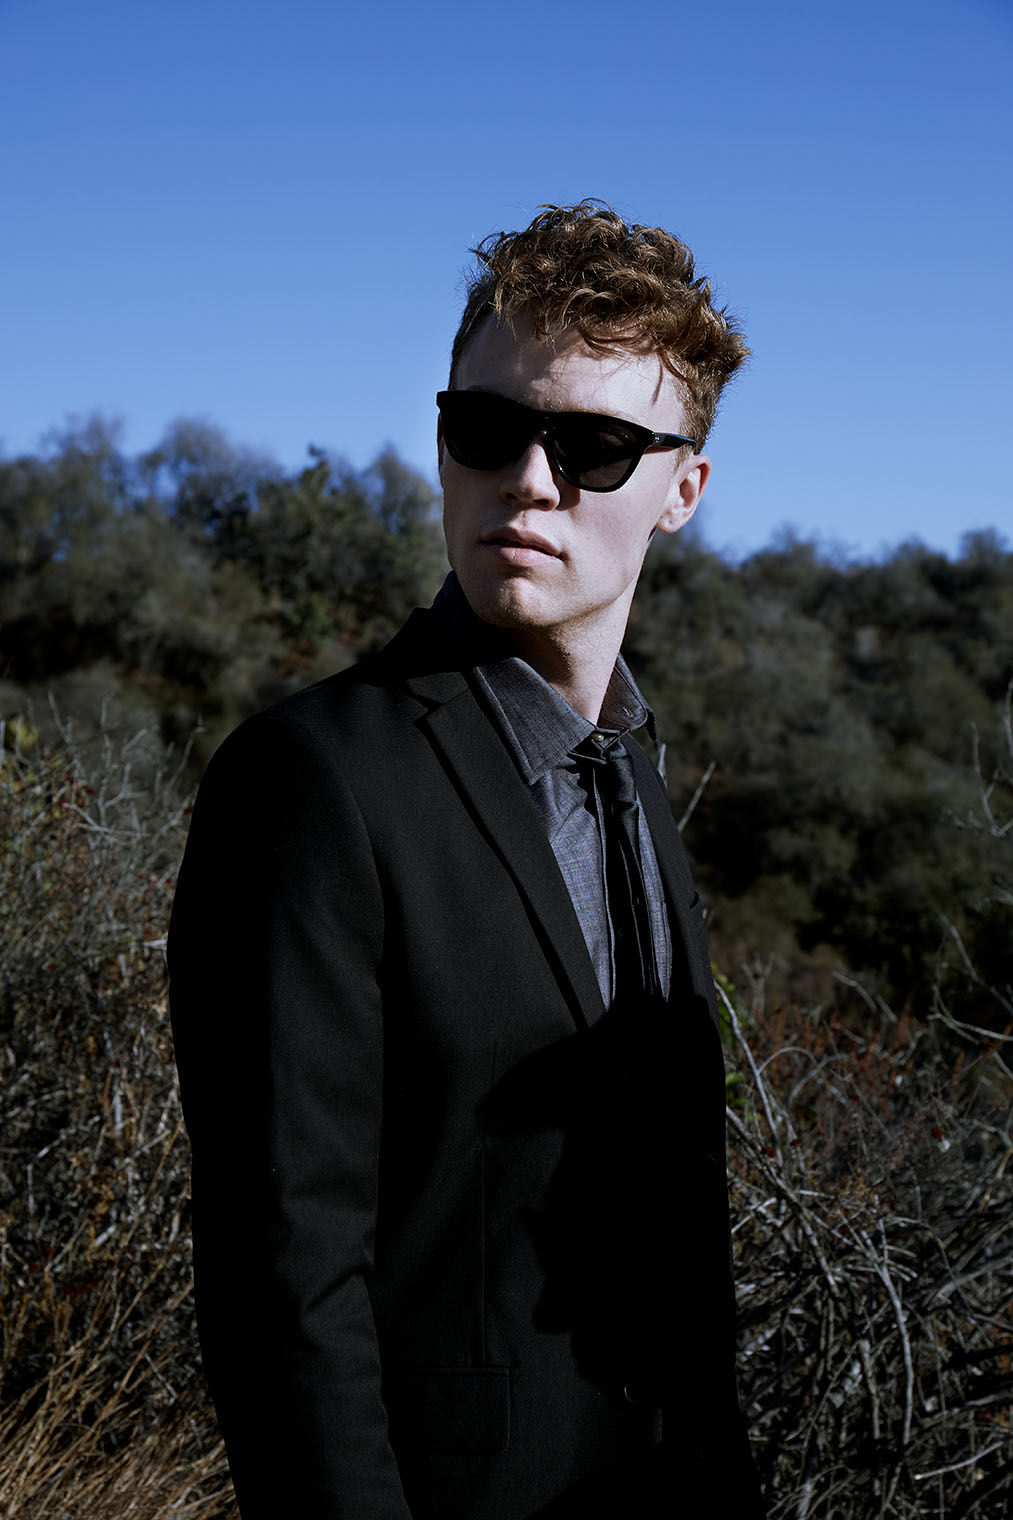 masculine man with sunglasses in nature, male fashion shoot in California landscape with big horizon